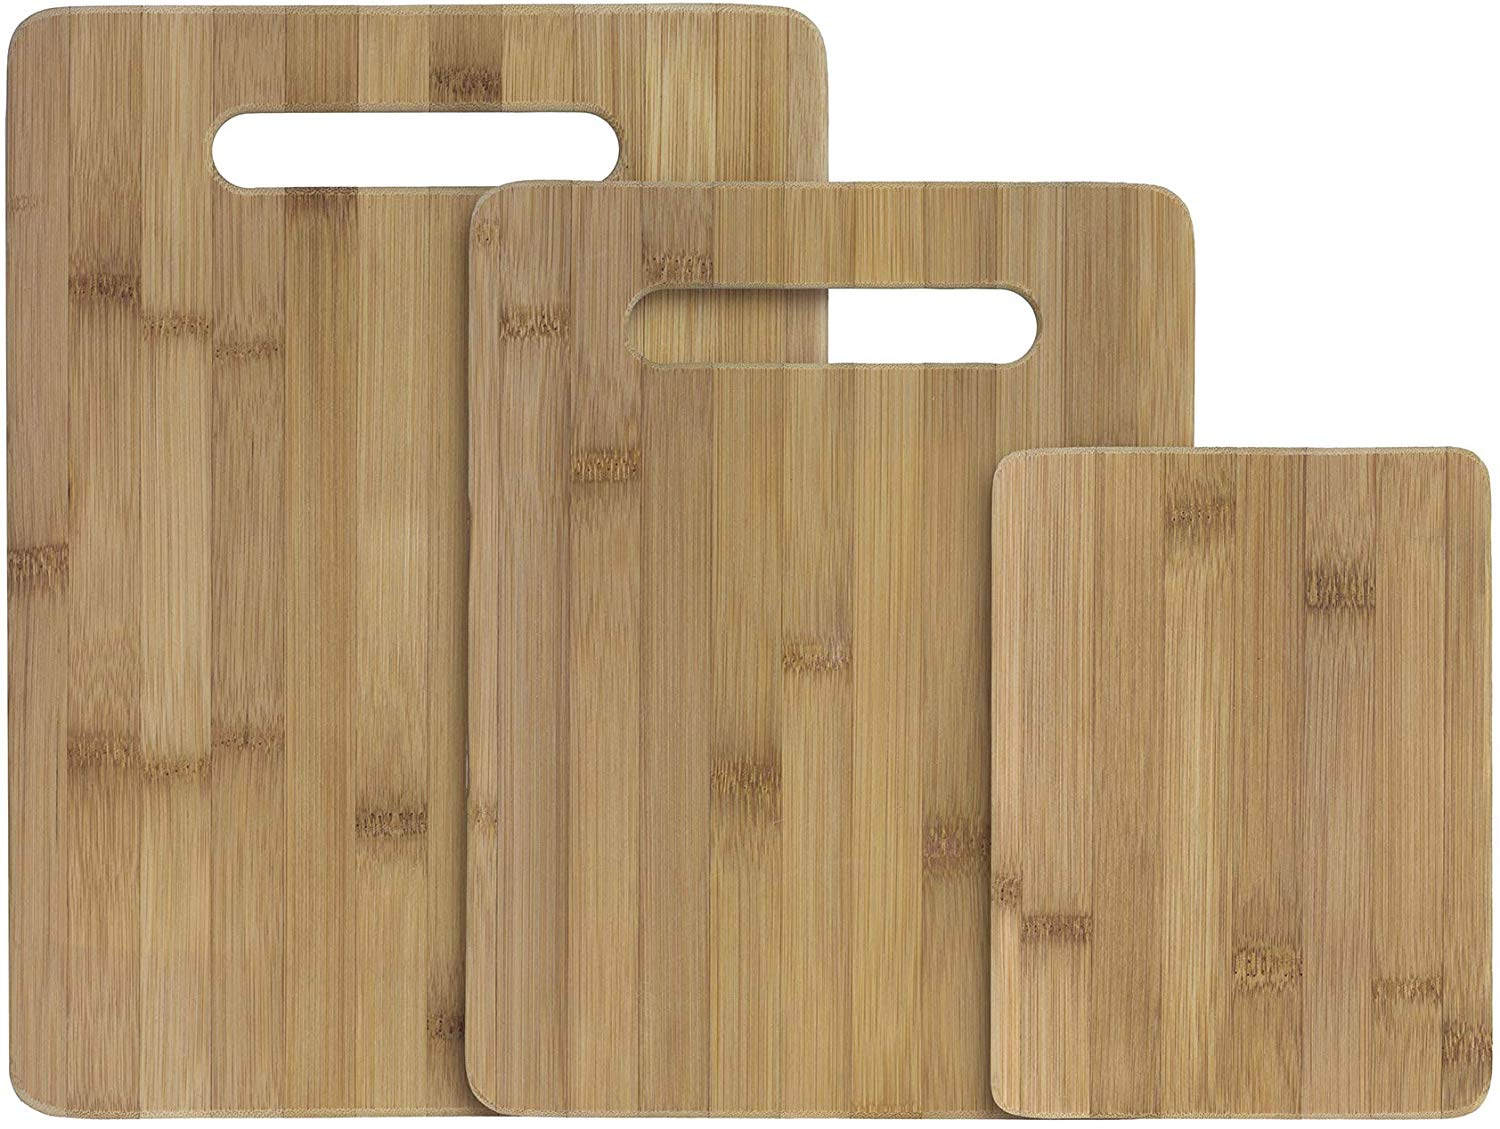 Totally bamboo 3-piece bamboo serving and cutting board